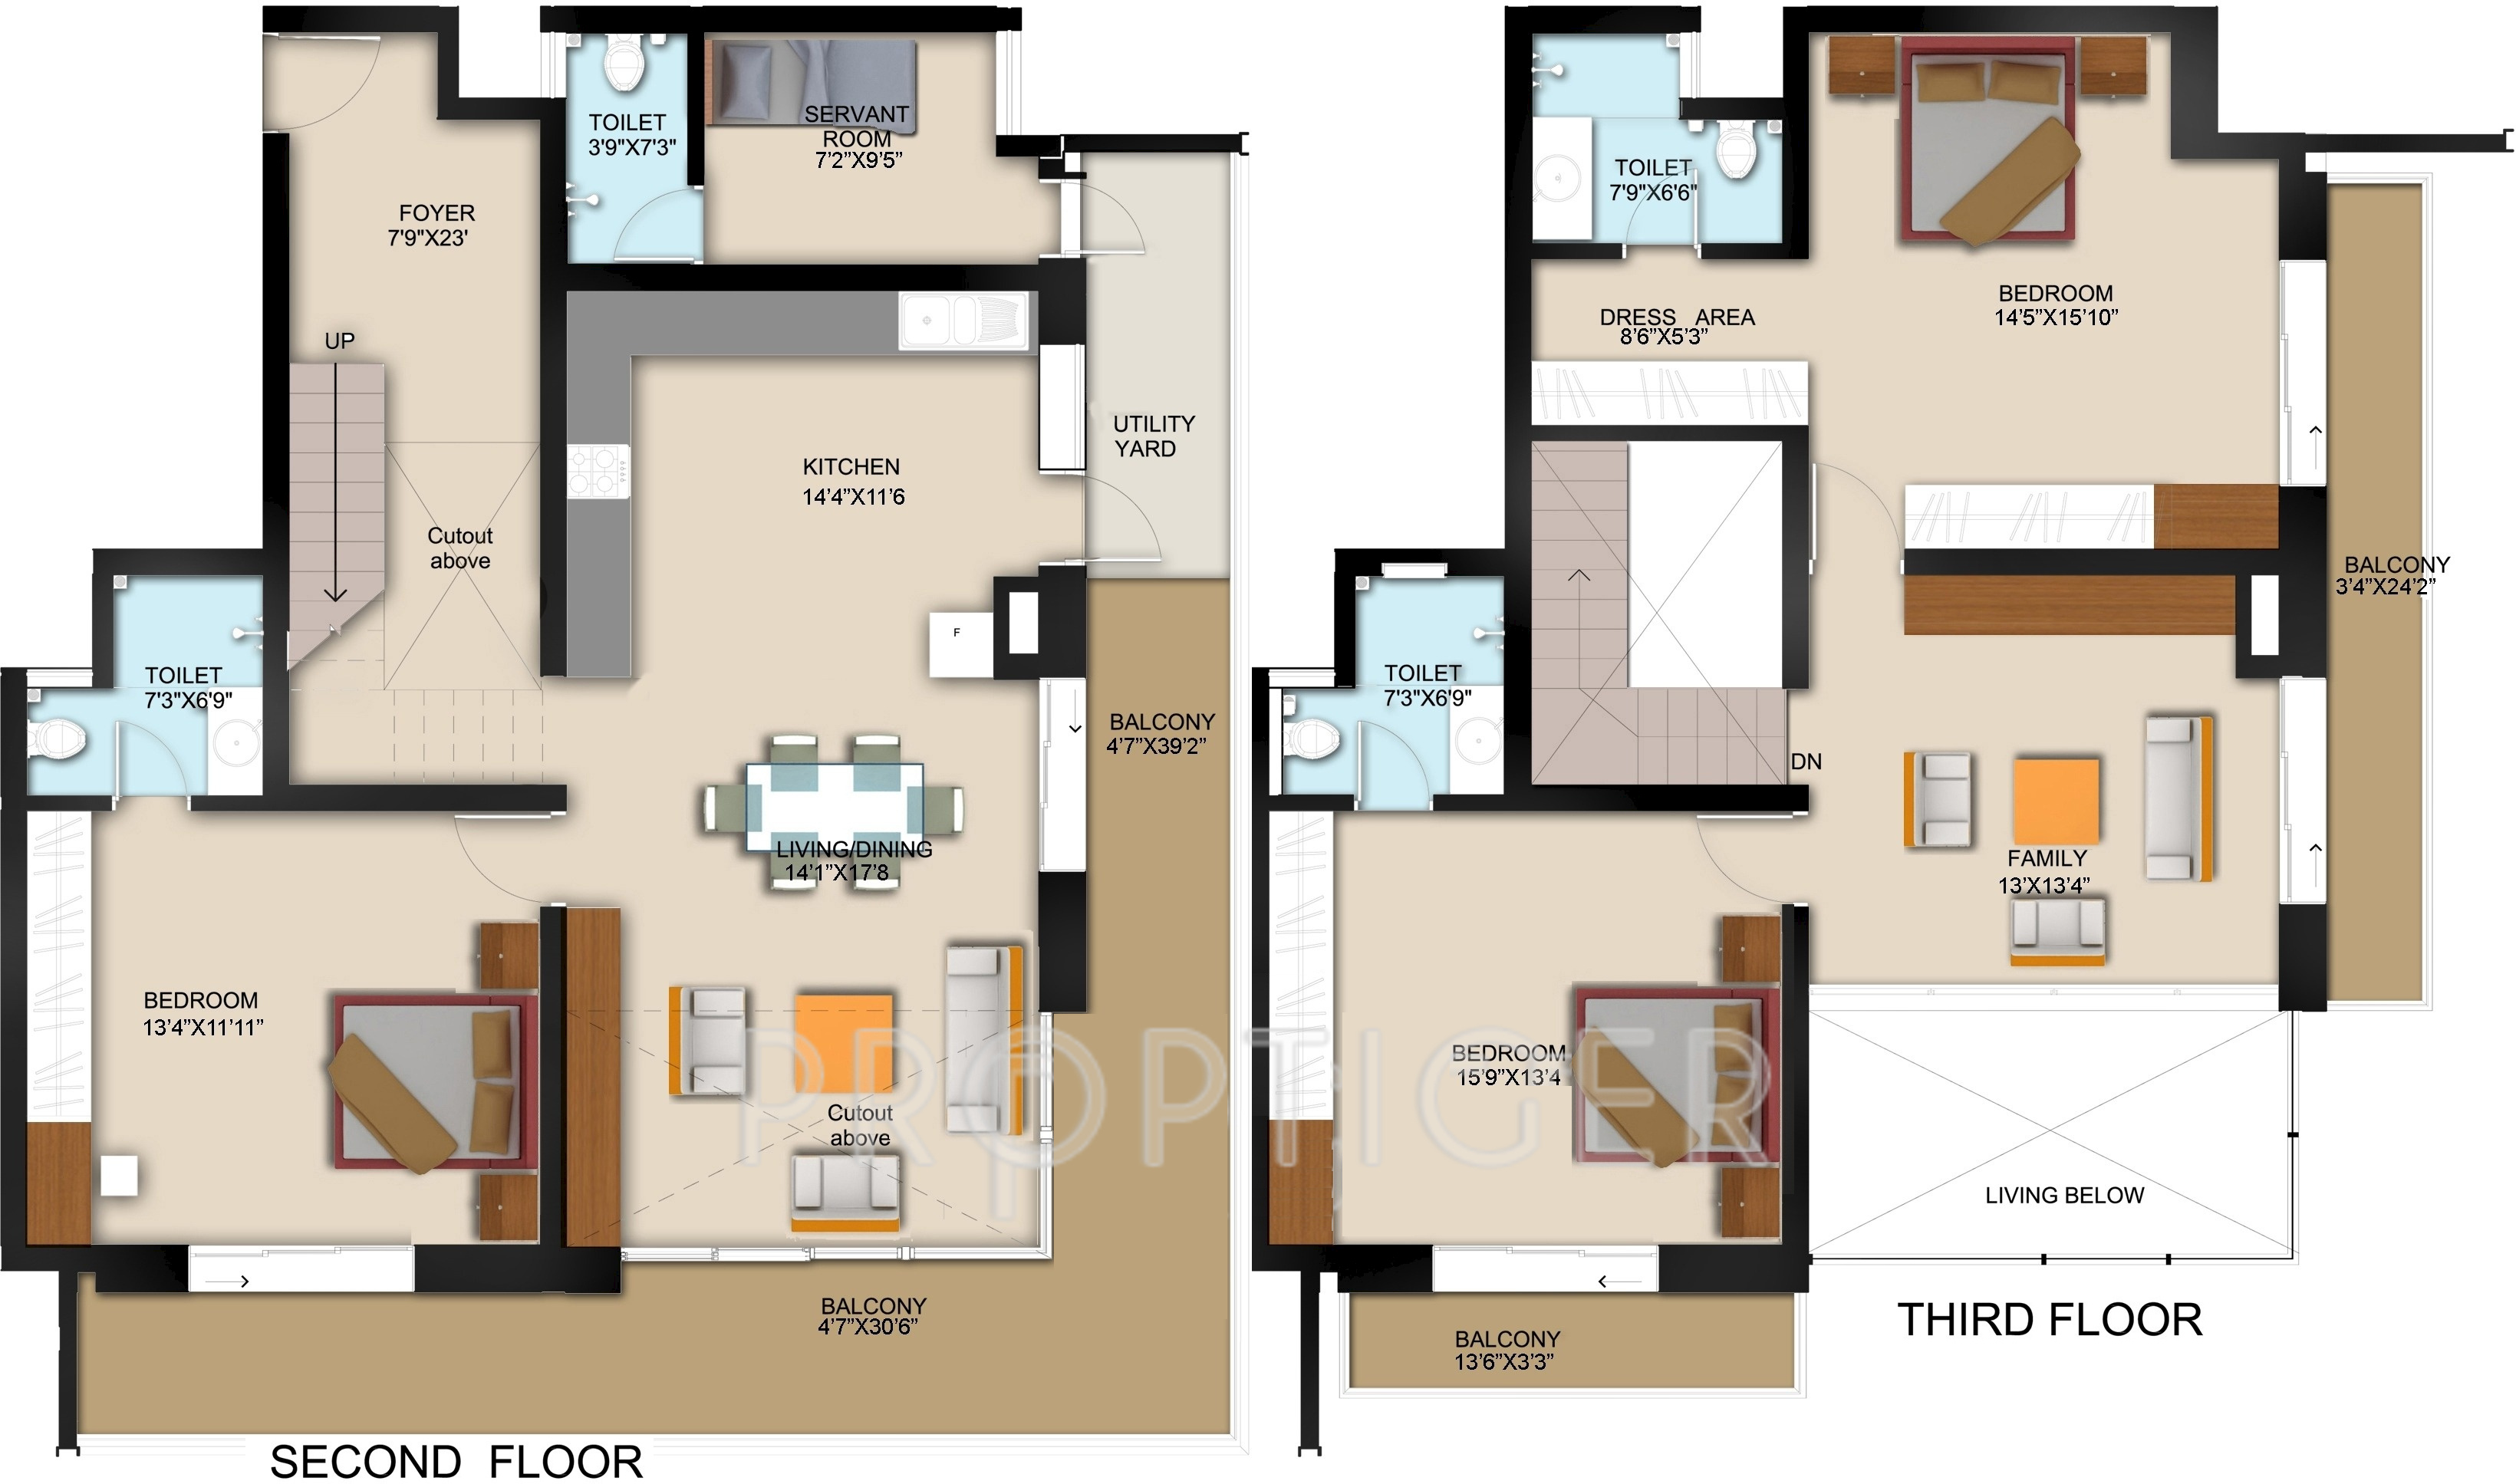 Camp David Floor Plans Bing Images